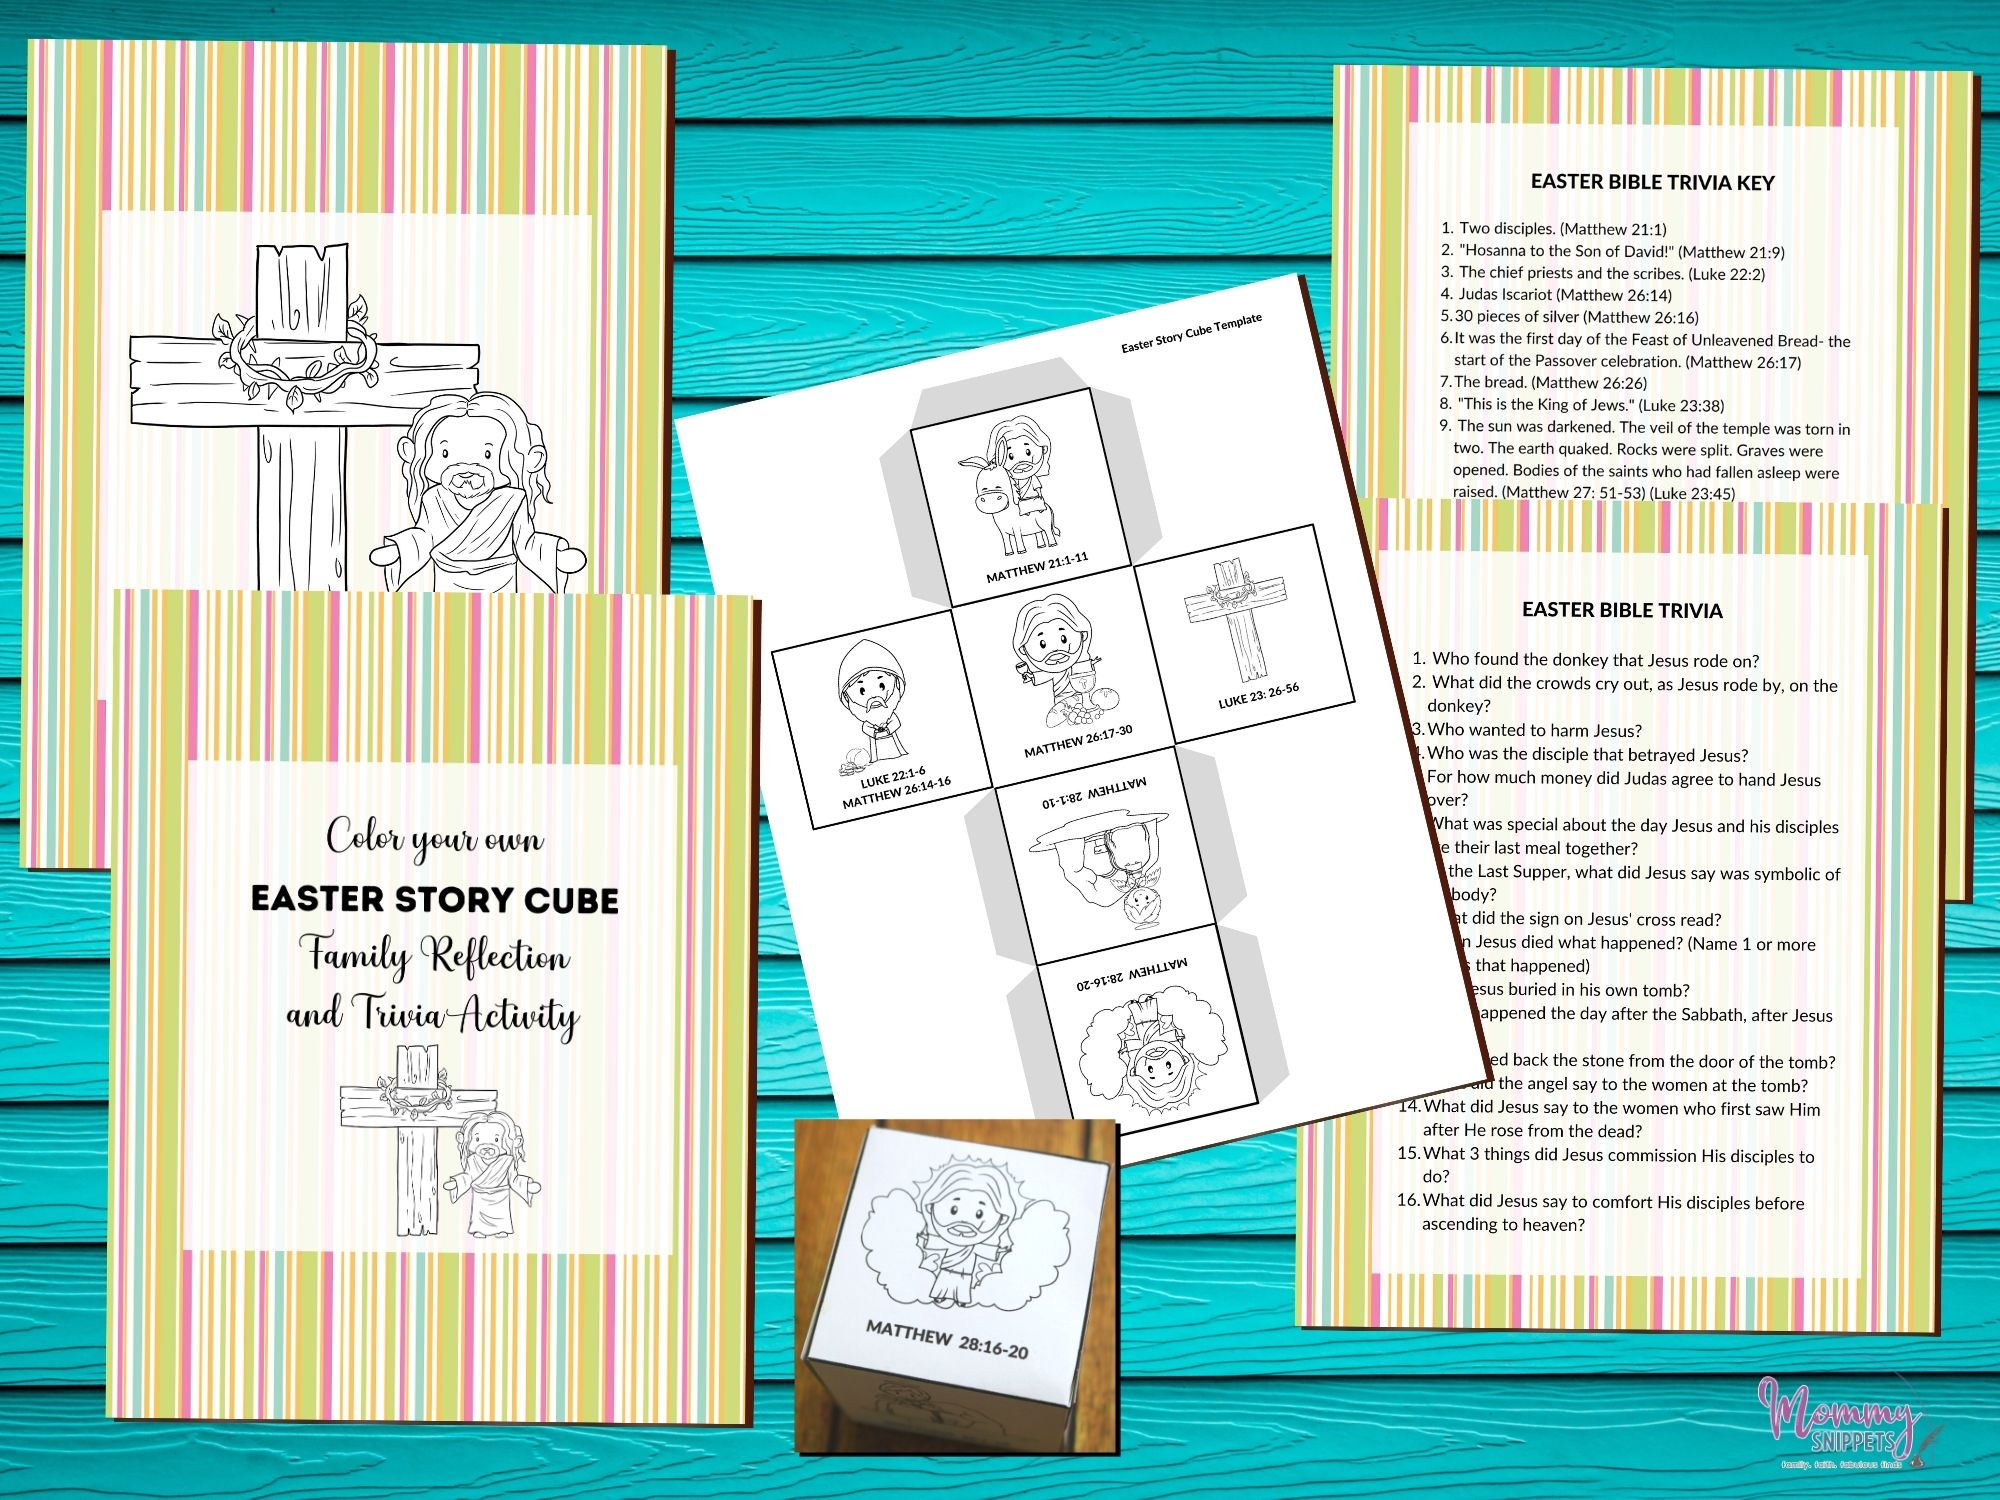 The Best Easter Story For Kids Story Cube Activity Printable Easter Game